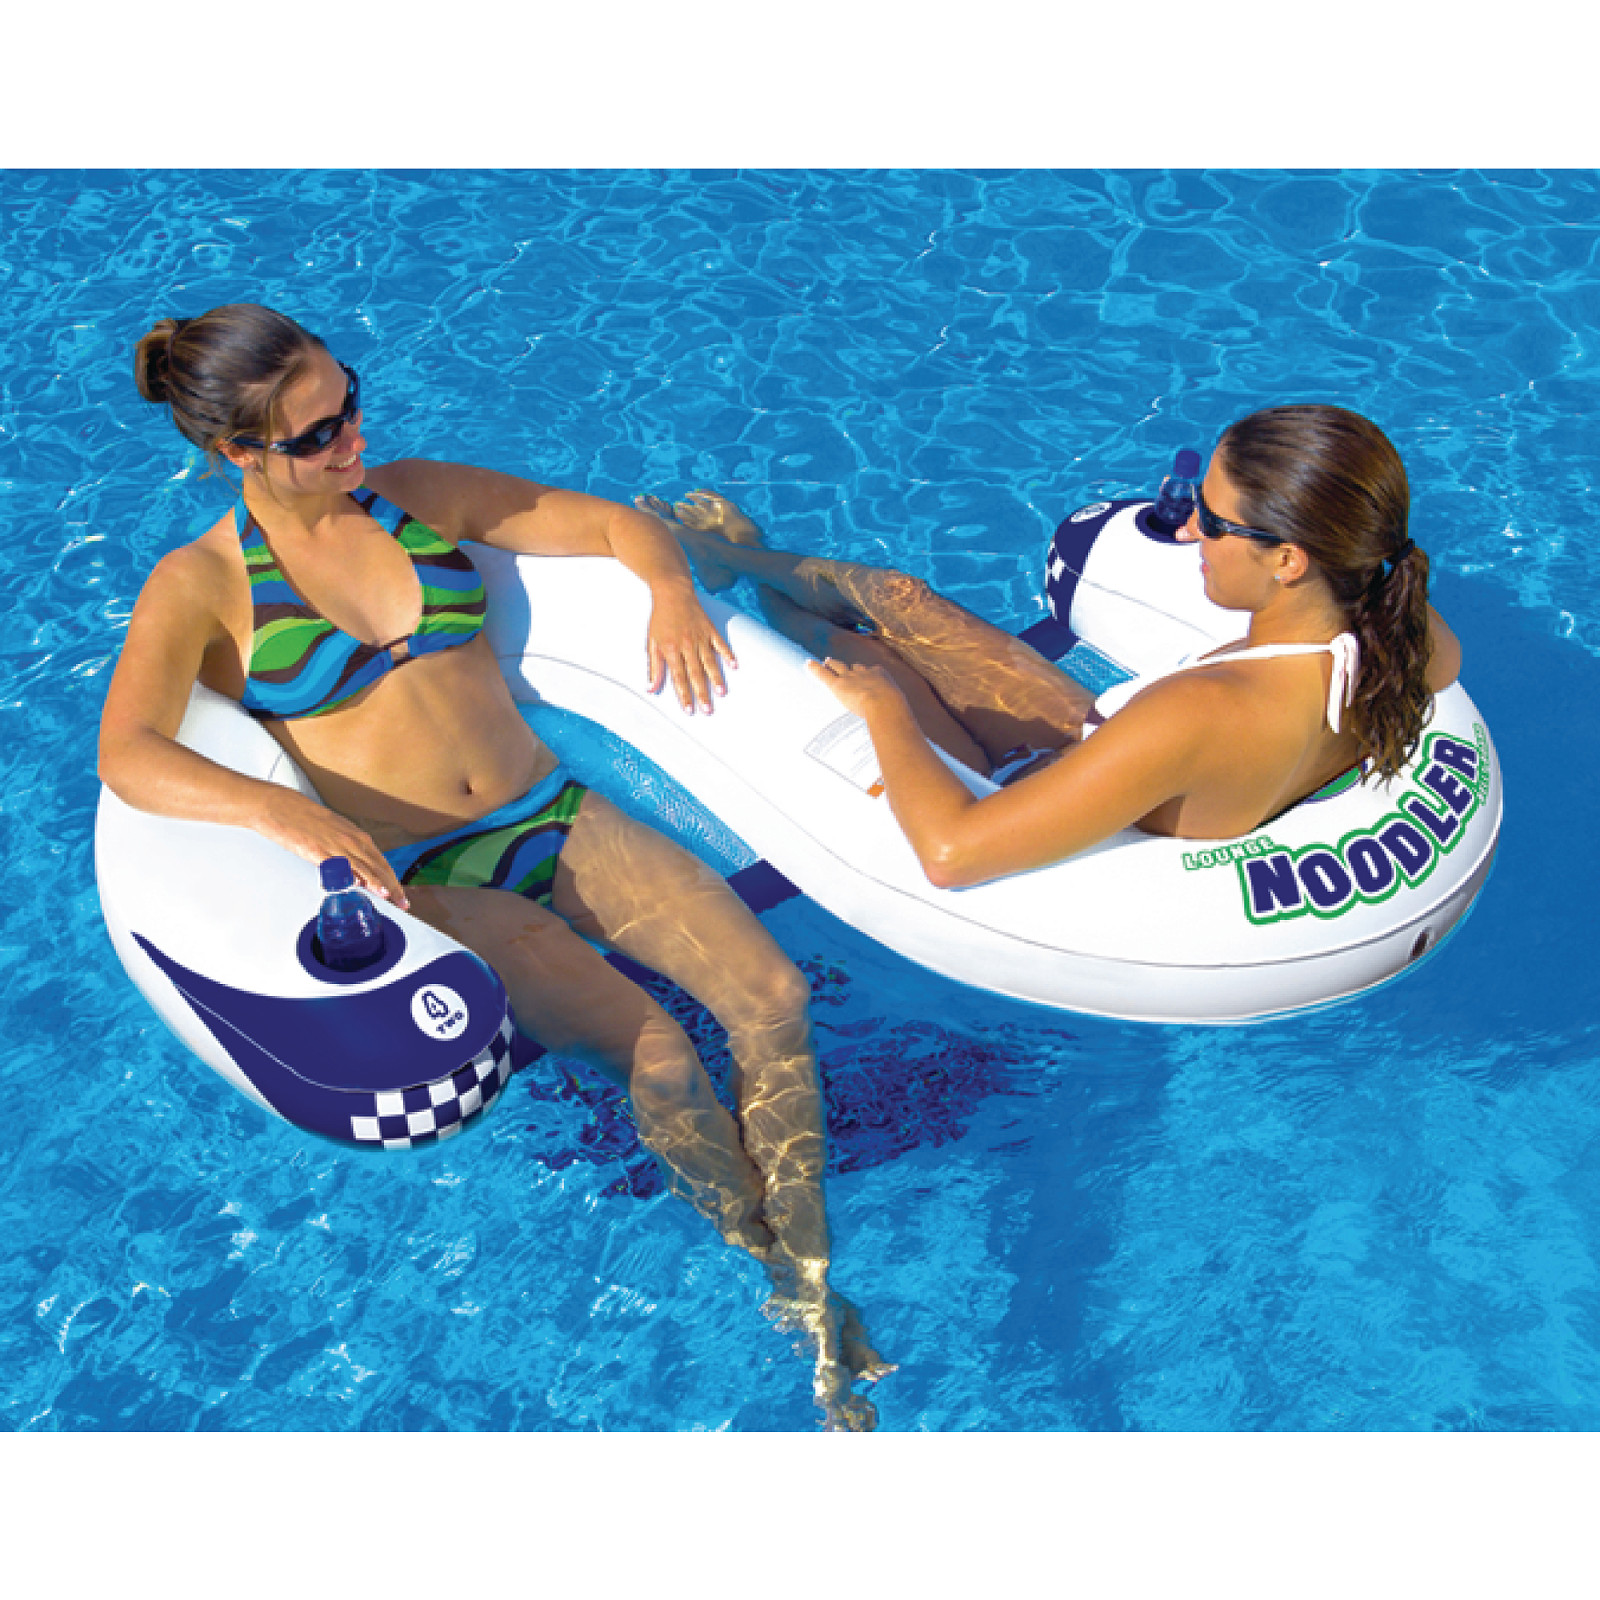 Noodler 2 Inflatable 2 Person Lounge Chair Swimming Pool Toy